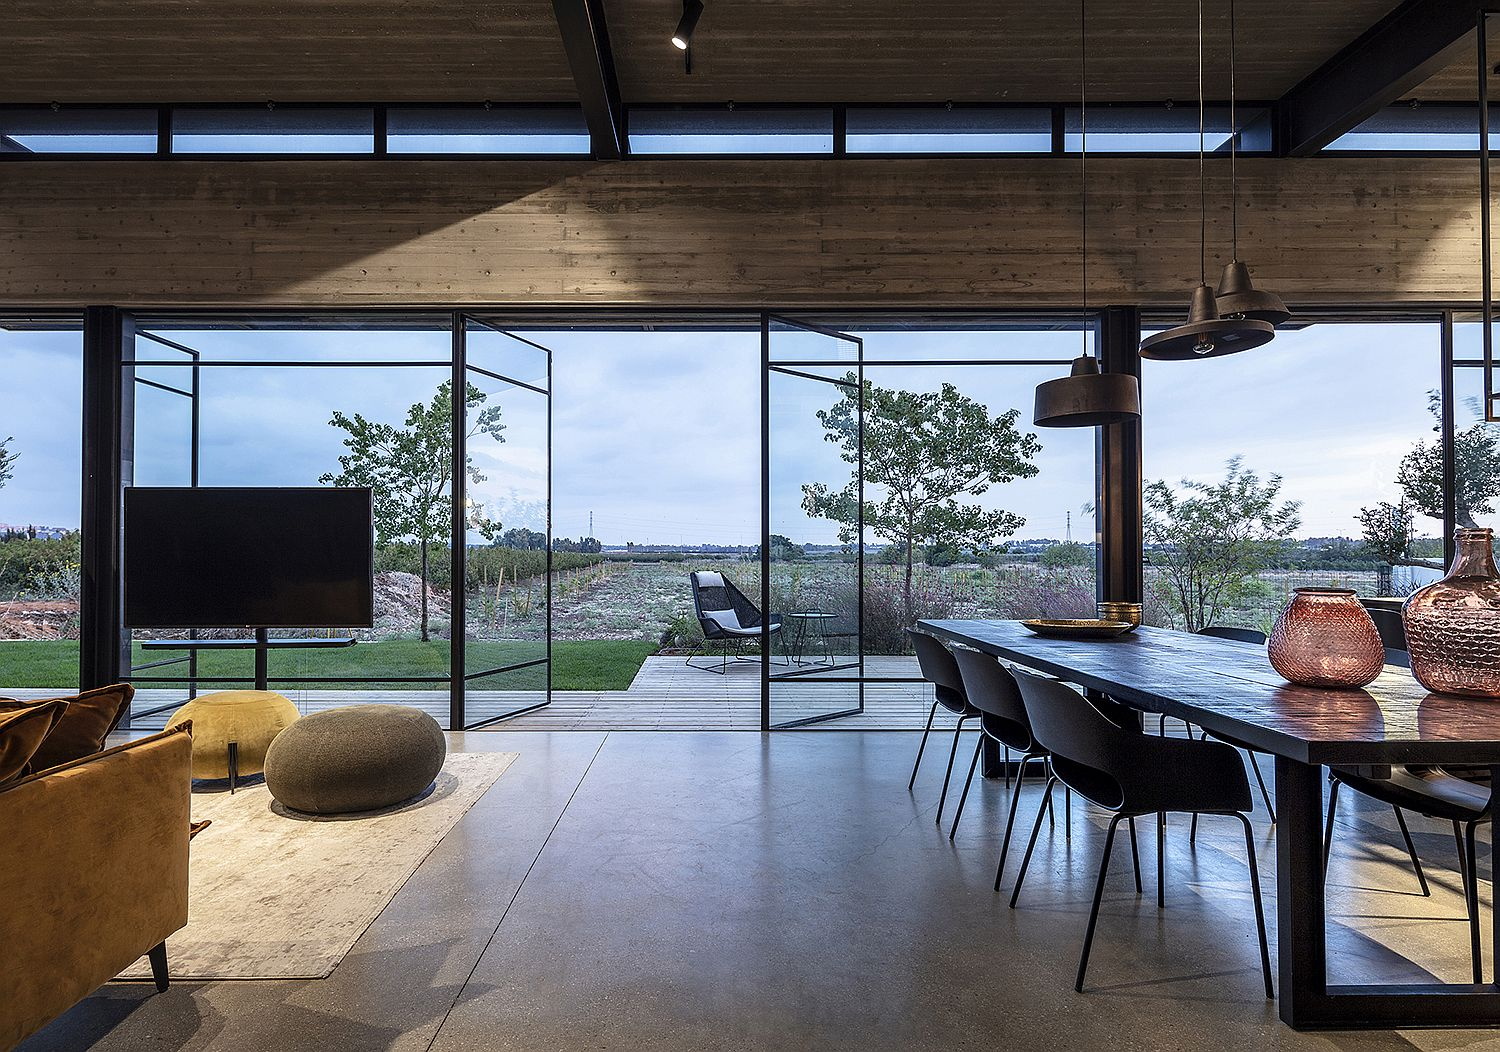 Swiveling glass doors connect the living room with the open field outside